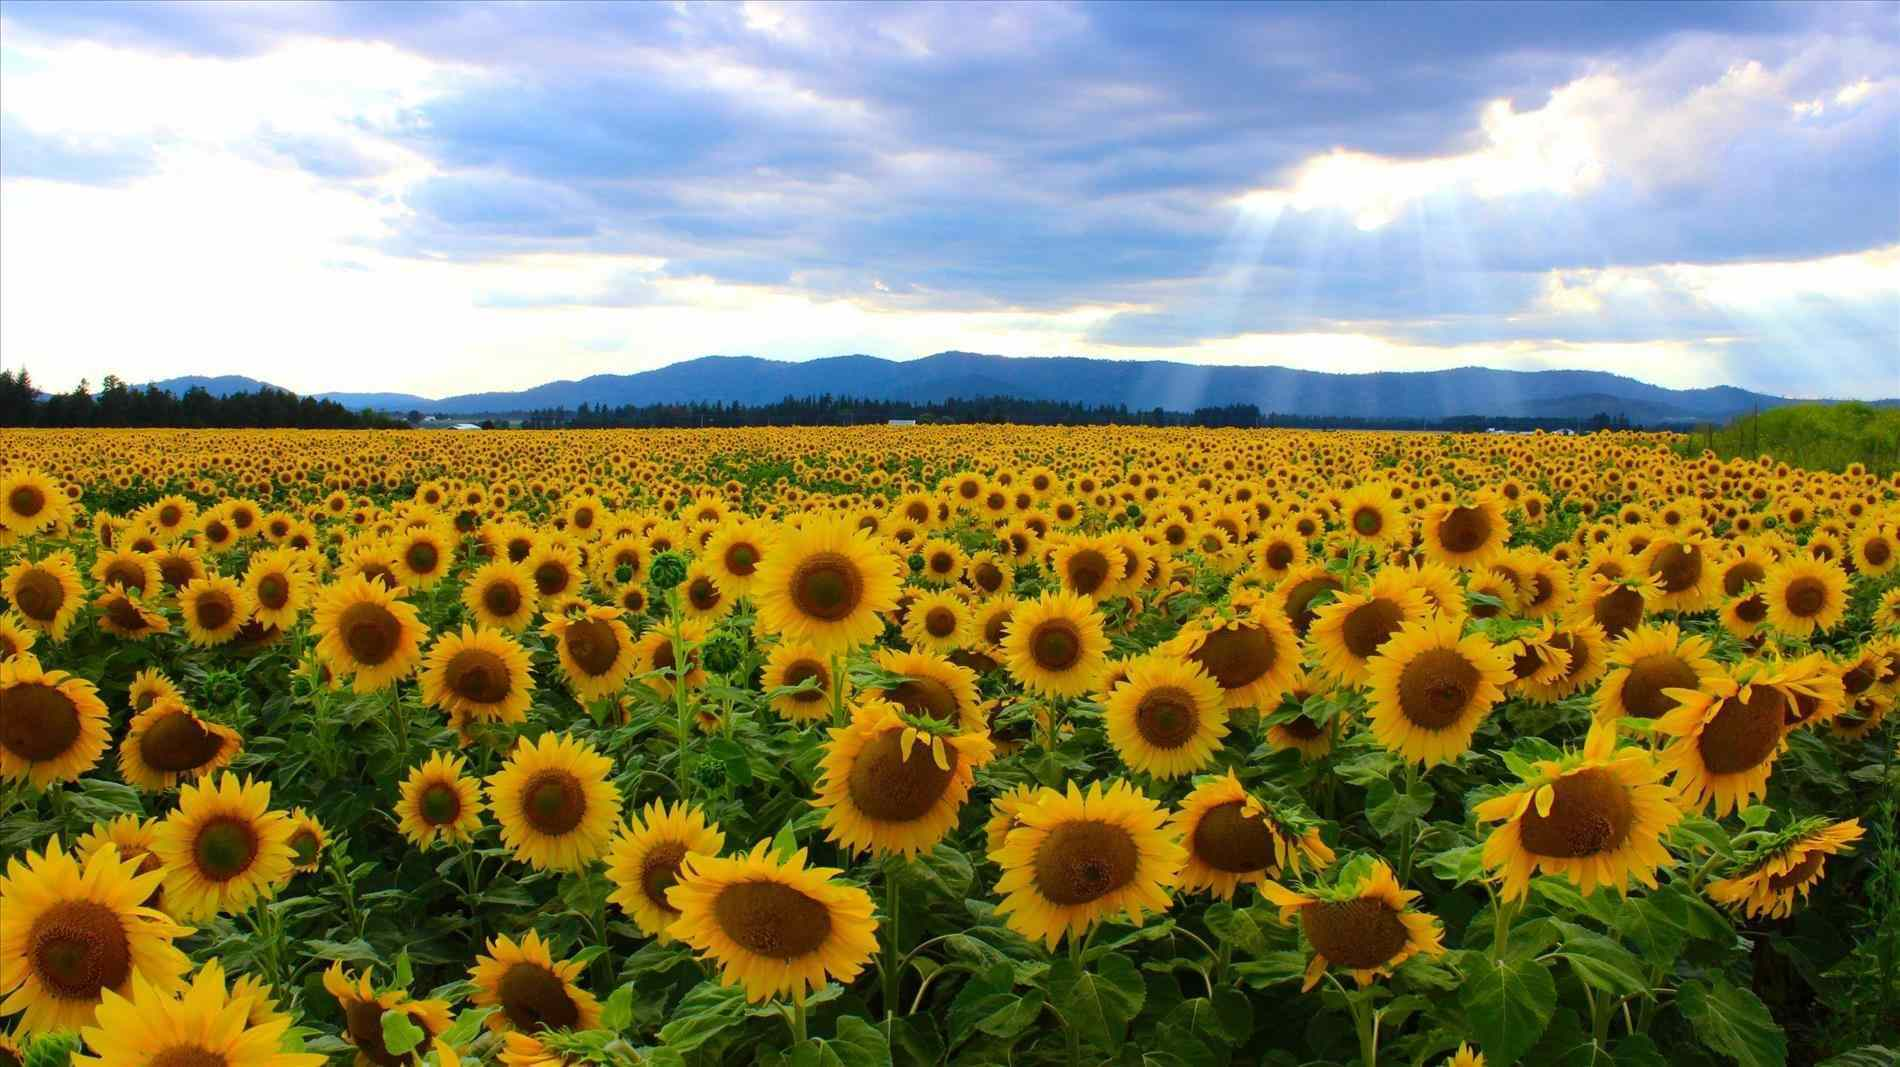 Field Of Sunflowers Wallpaper: Yellow Aesthetic Wallpapers